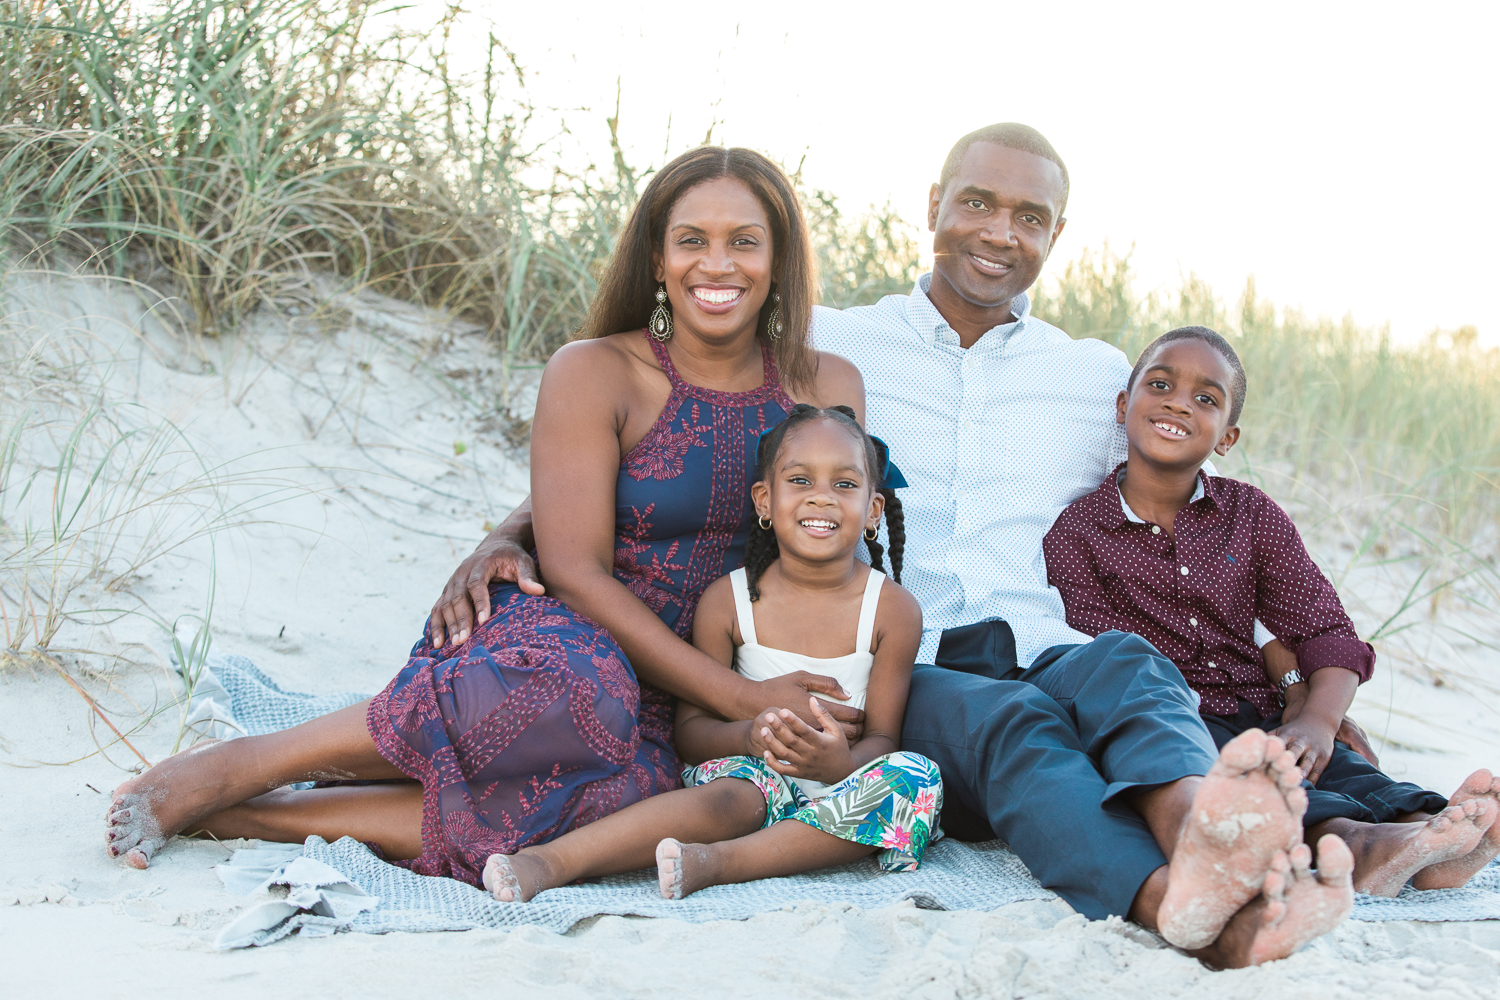 ponte vedra family photos at the beach during sunset